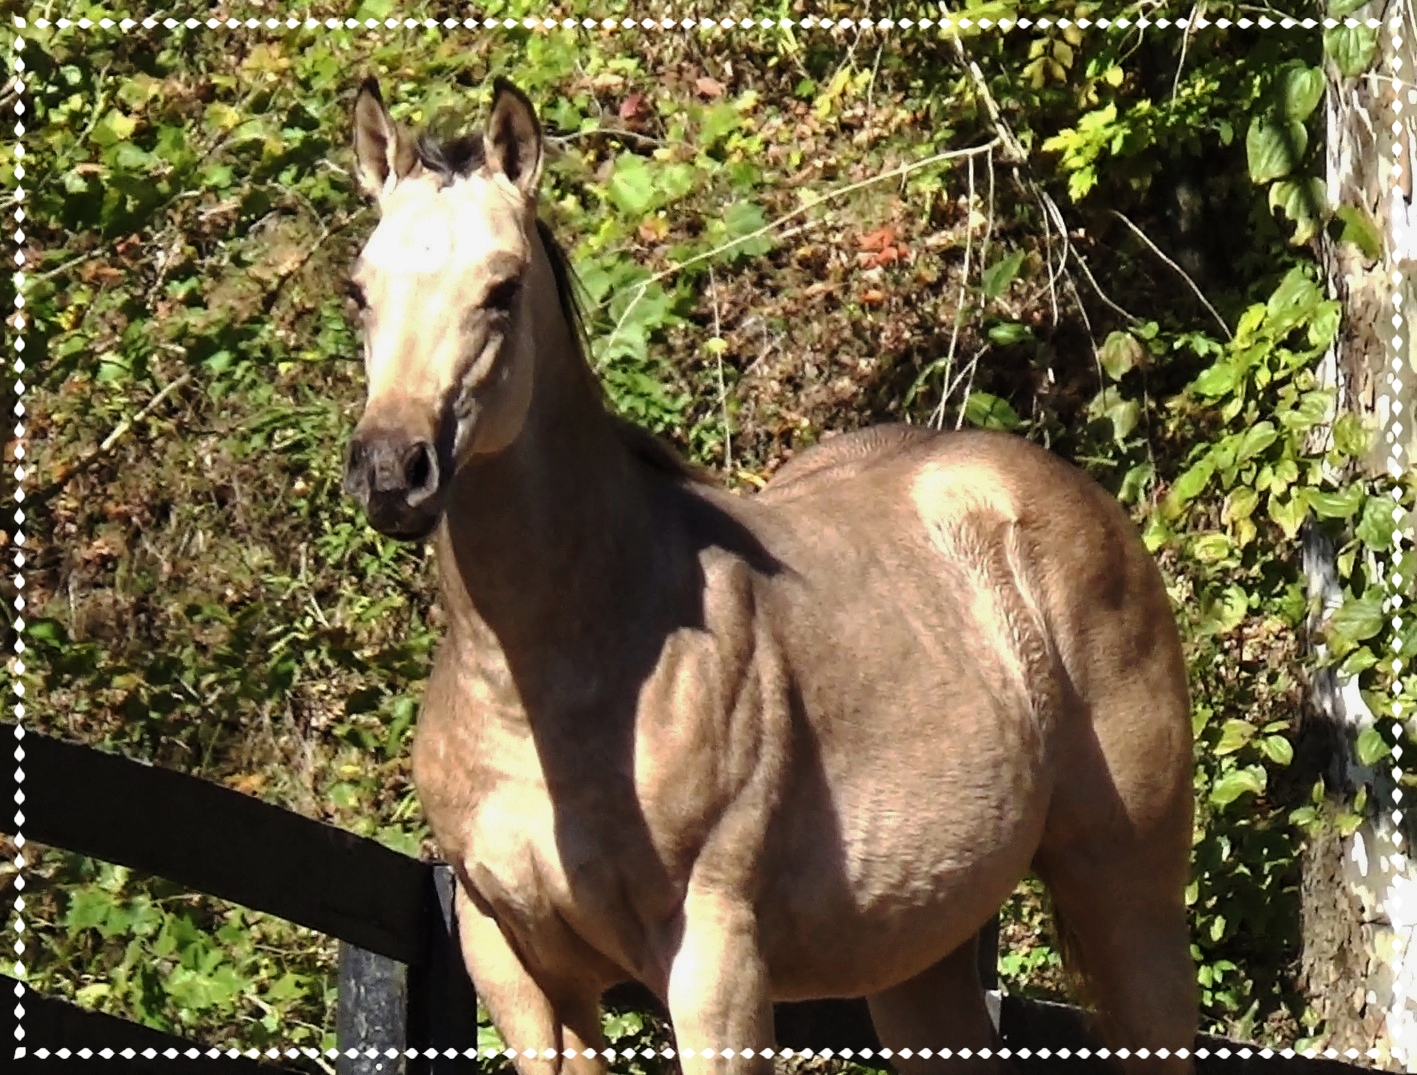 Steel A Queen, 2018 AQHA Filly - Full sibling due Spring 2019. Can be reserved now. Beautiful Buckskin AQHA Filly. Sired by White Steel and out of Rocka Bye Baby. Lines to Poco Bueno, Doc Bar and Colonel Freckles.